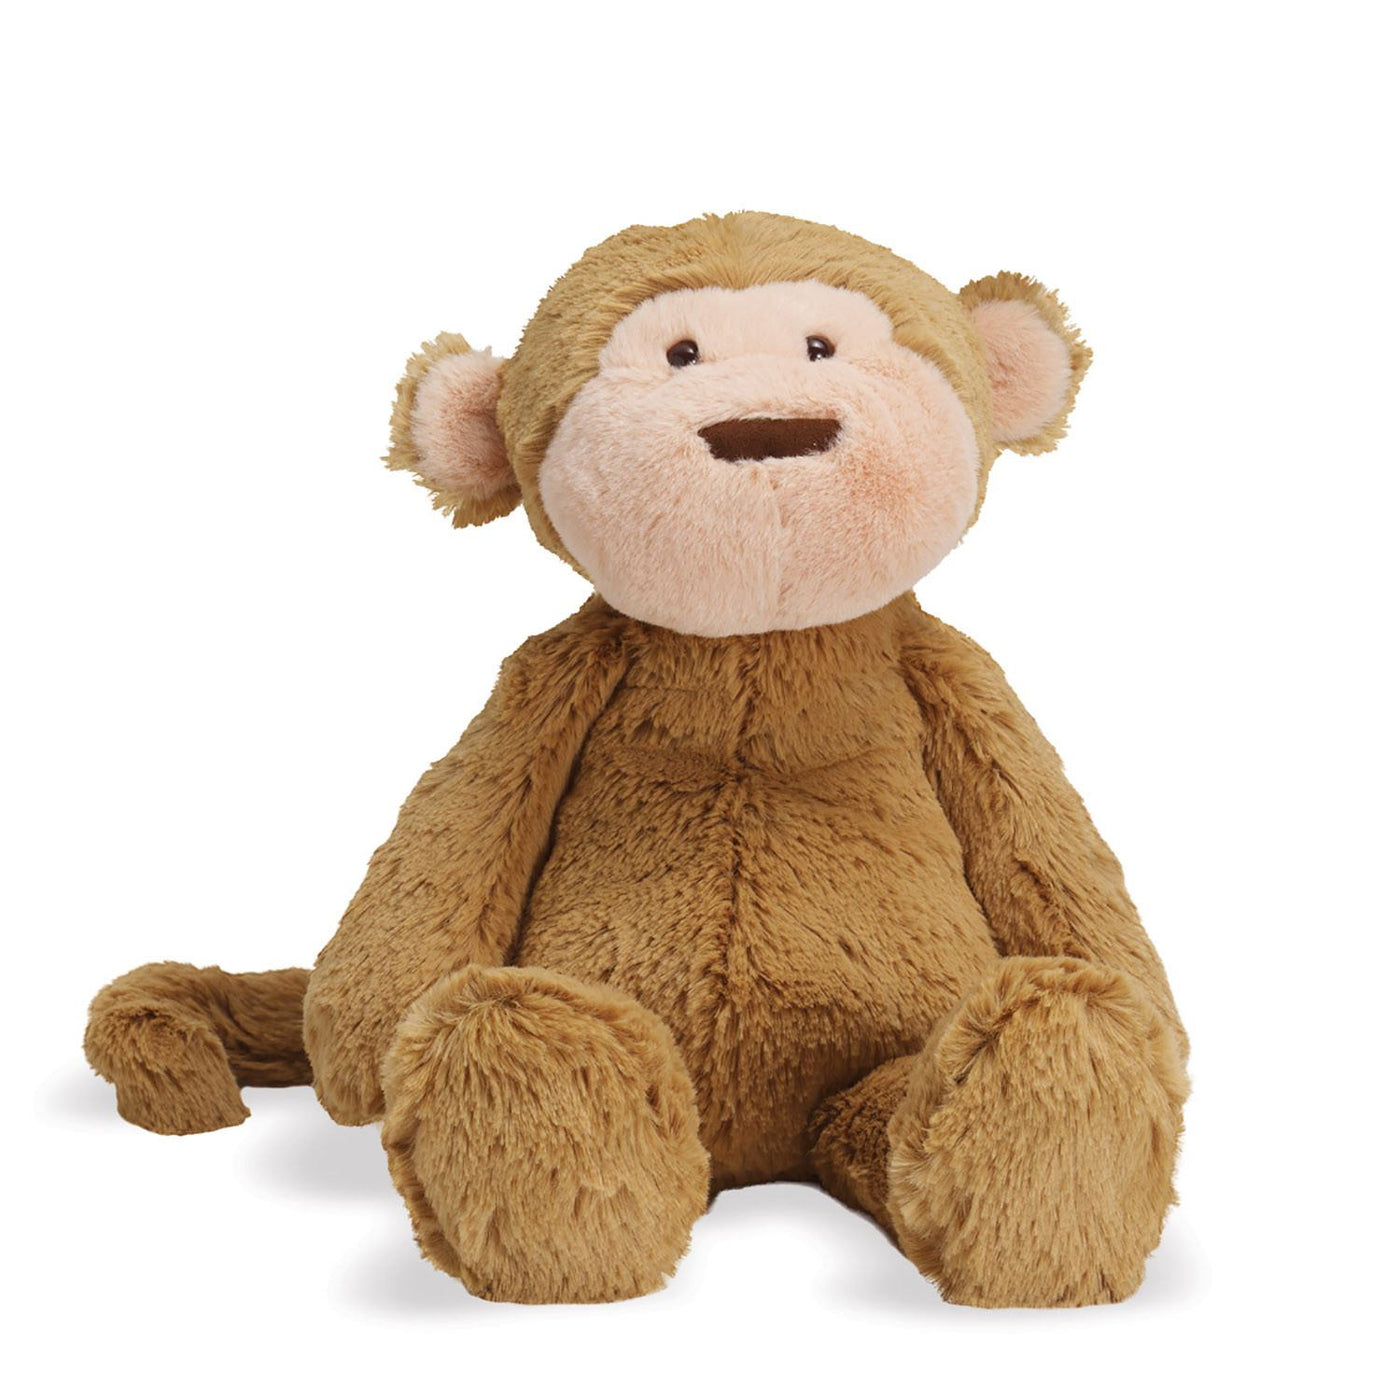 Lovelies - Mocha Monkey Medium - Manhattan Toy